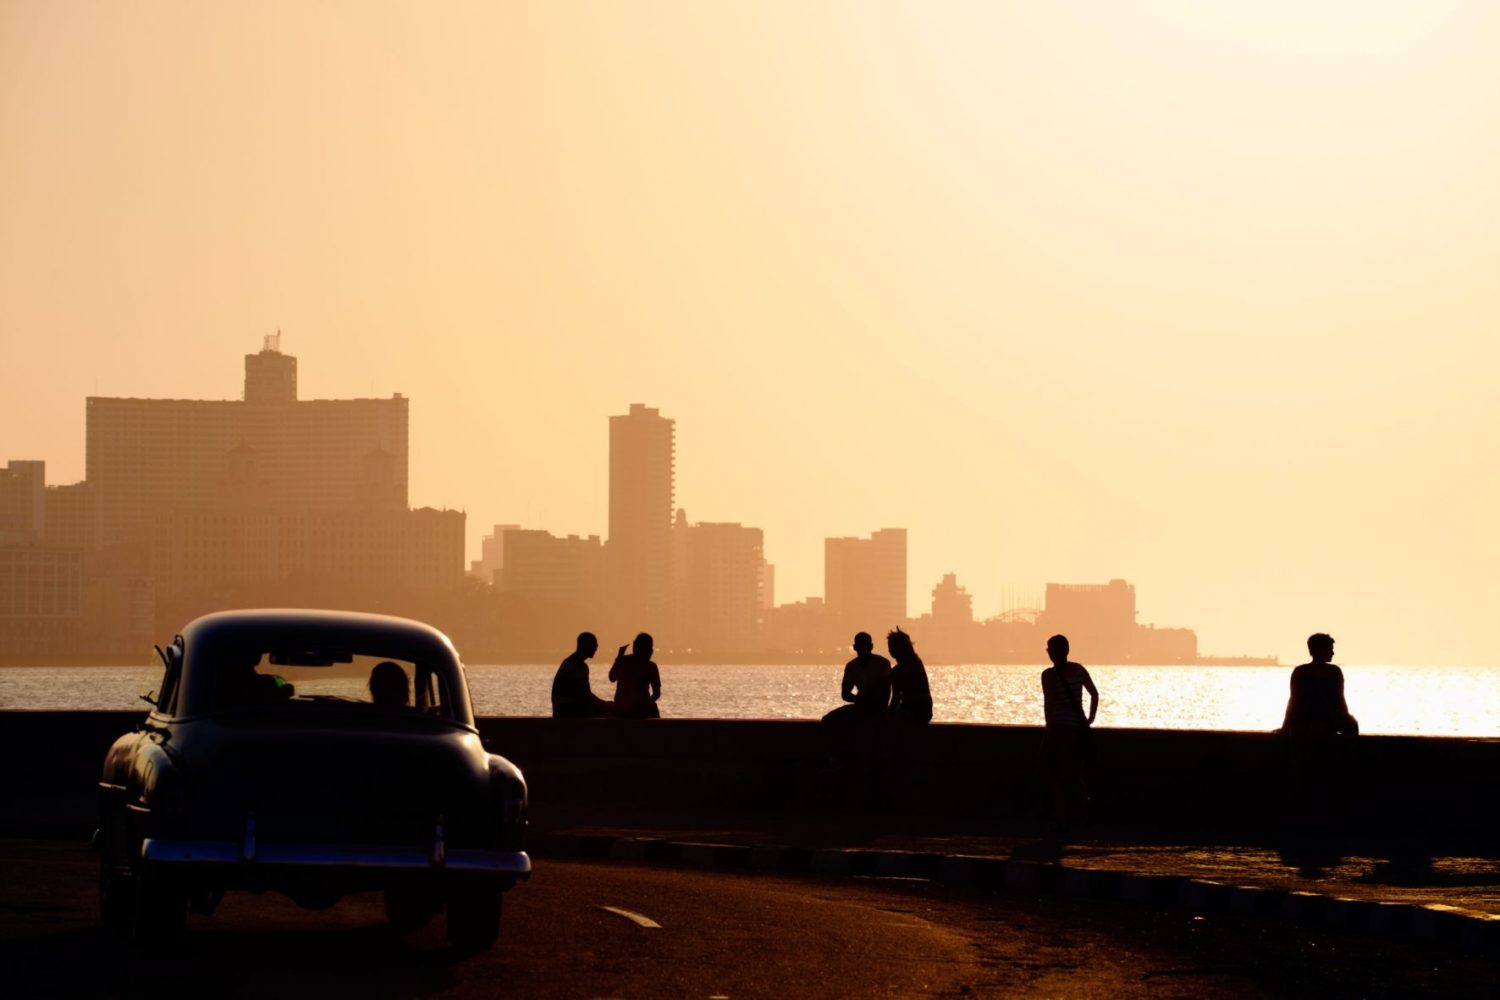 Skyline in La Habana, Cuba, at sunset, with vintage cars on the street and people sitting on the Malecon